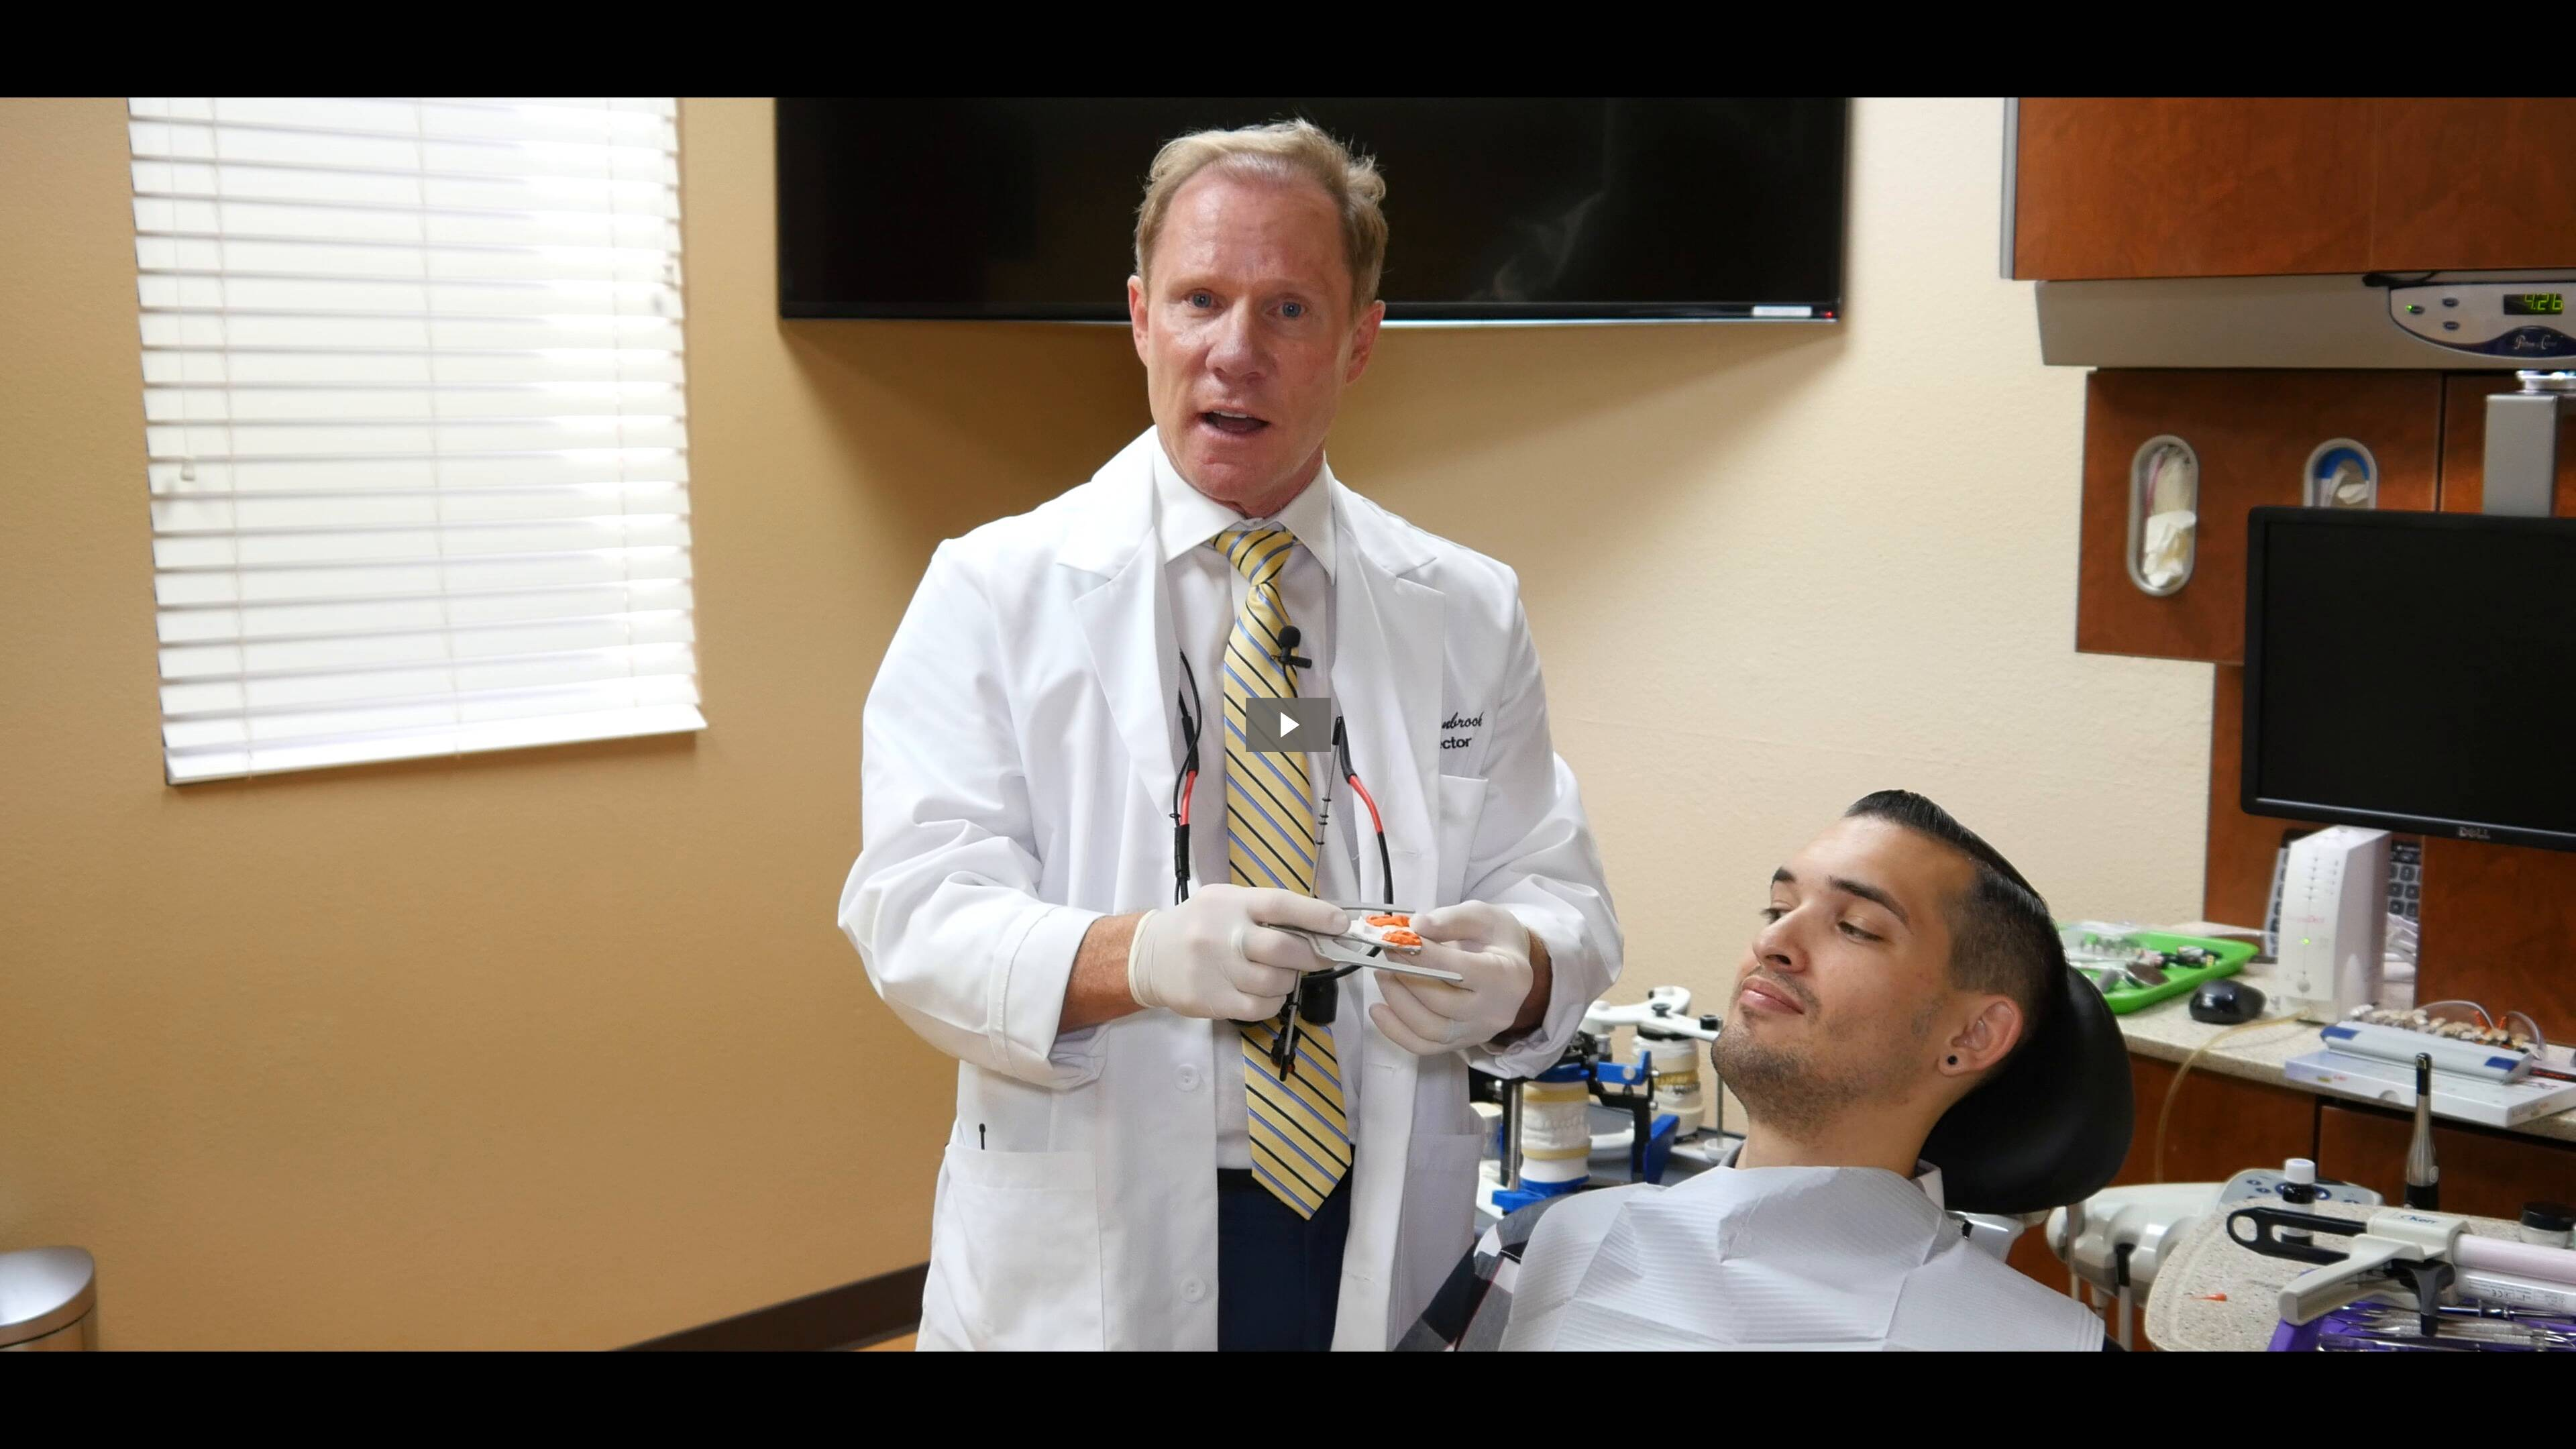 Simplify your next comprehensive treatment case with Keating's 4K Ultra HD Part 1 - Dental Face Kois Dento Facial Analyzer video series.